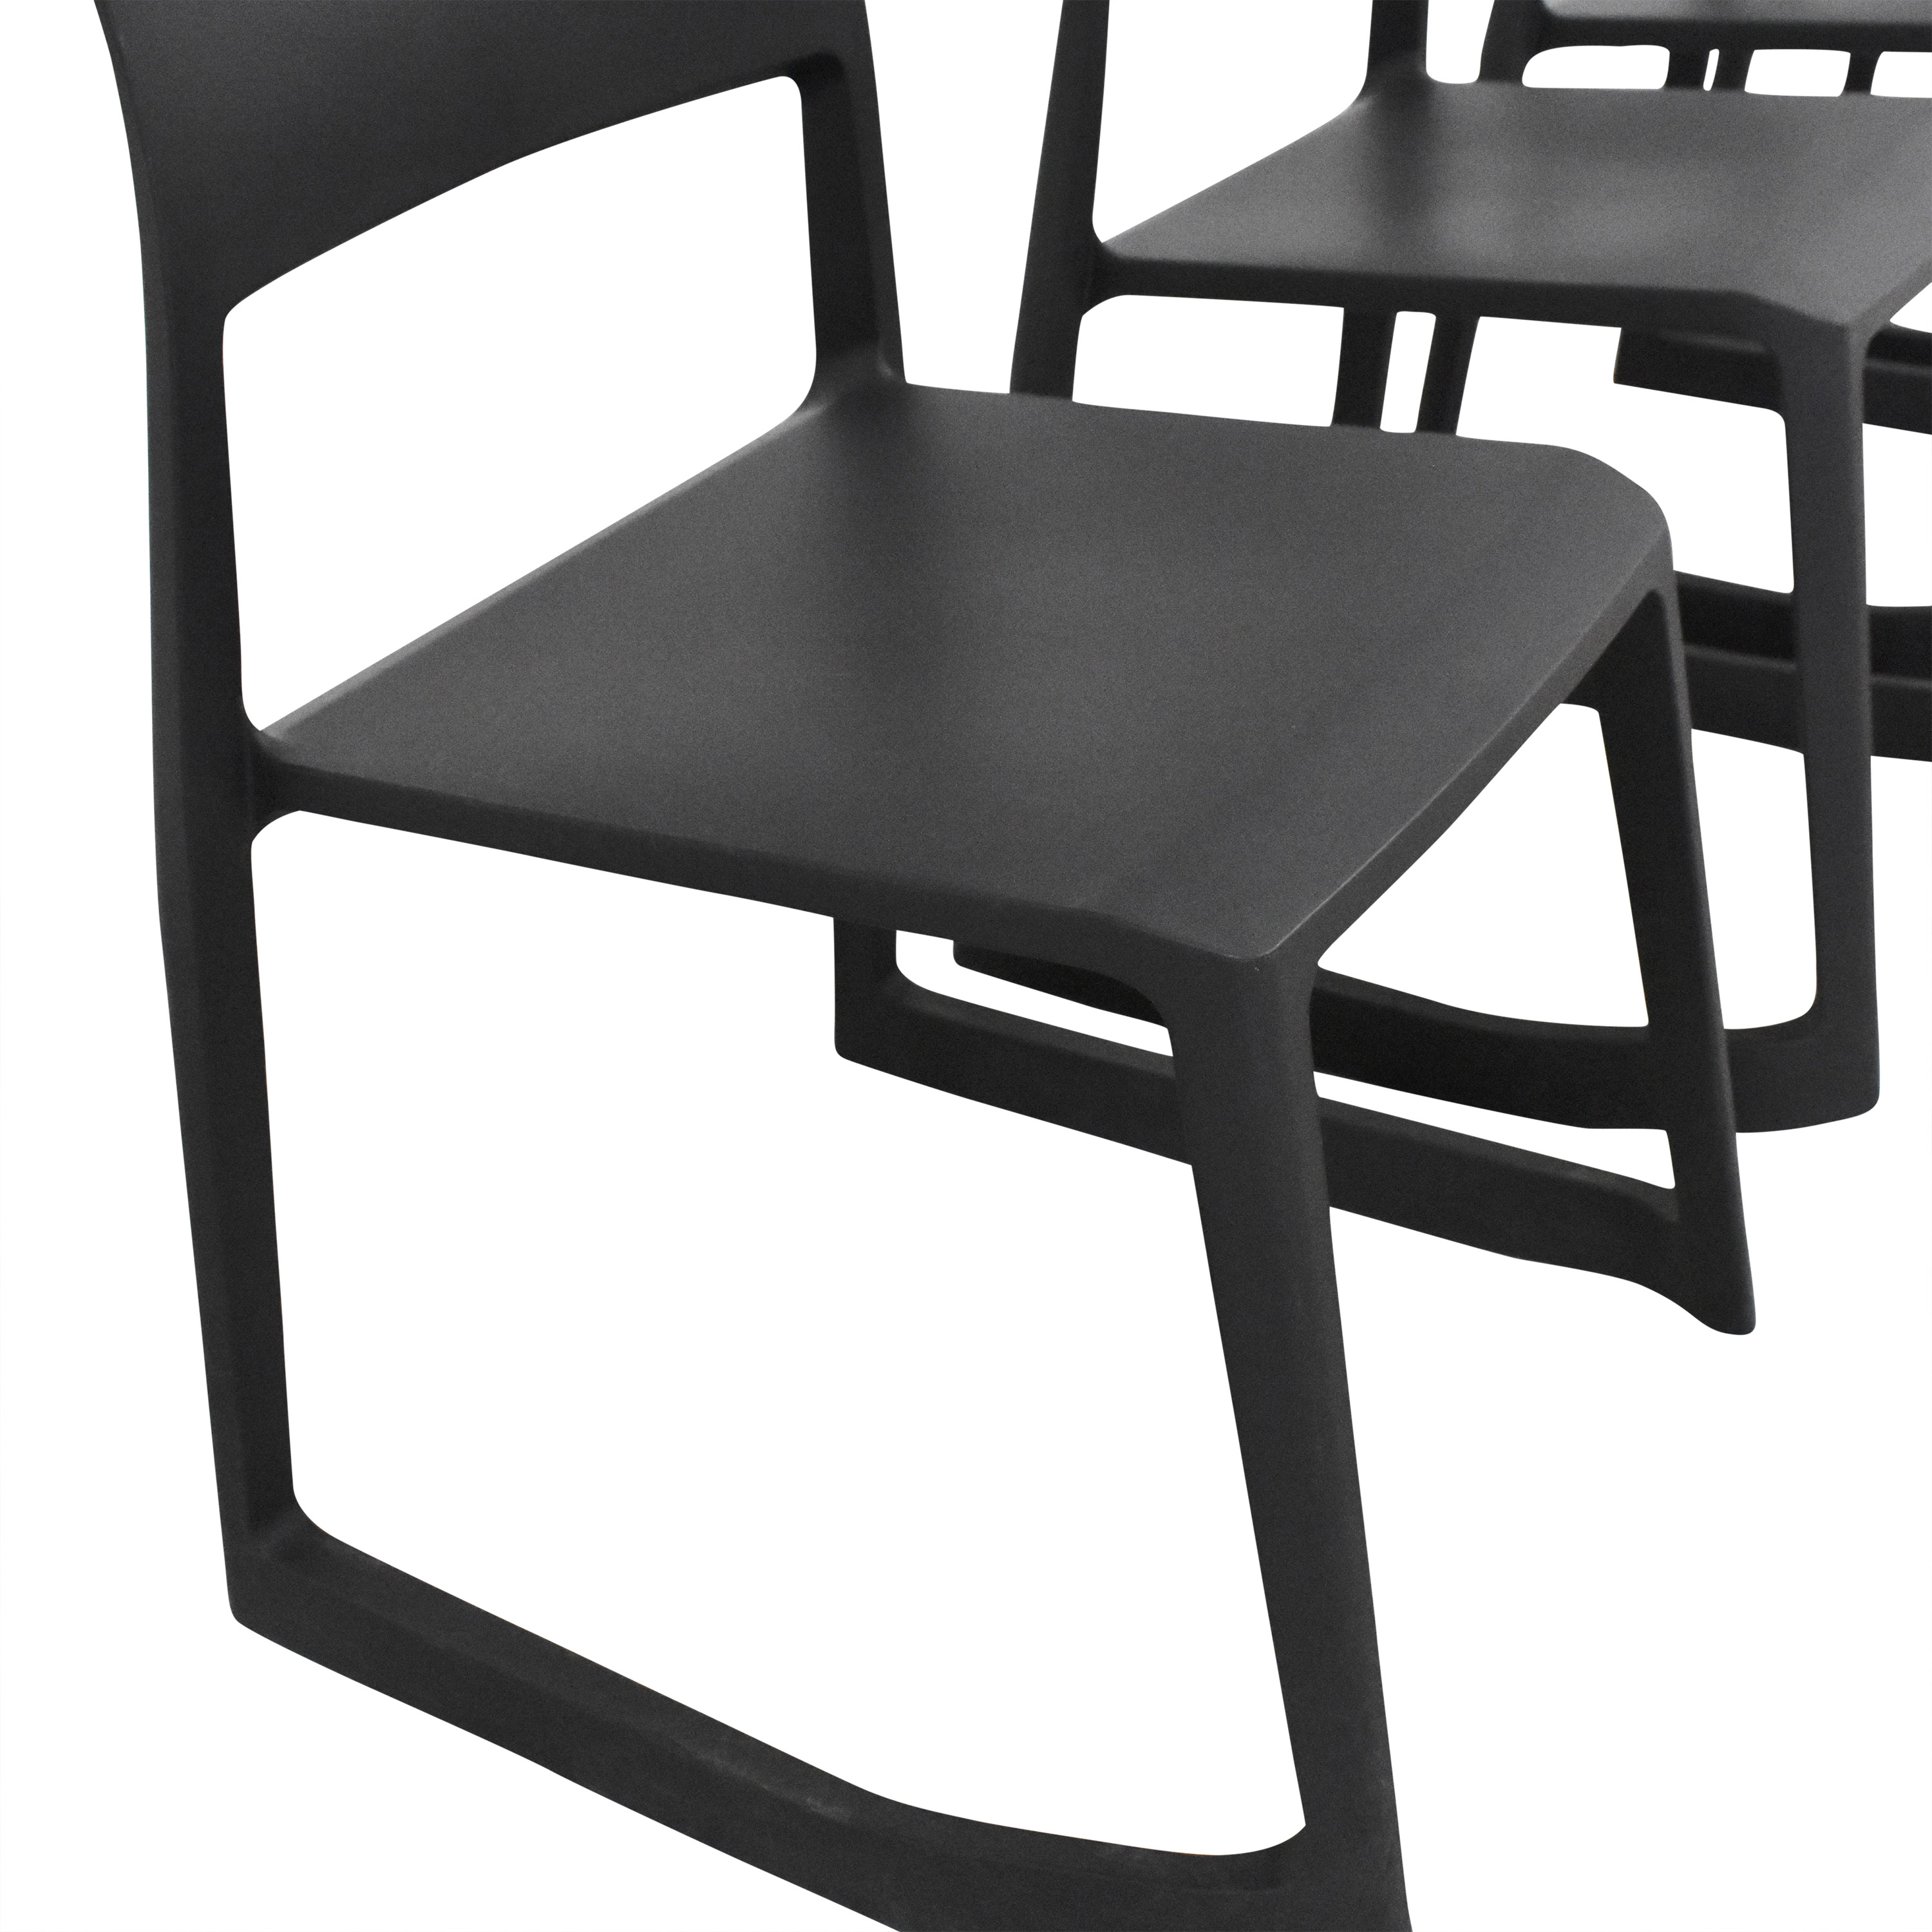 Vitra Tip Ton Chairs / Dining Chairs